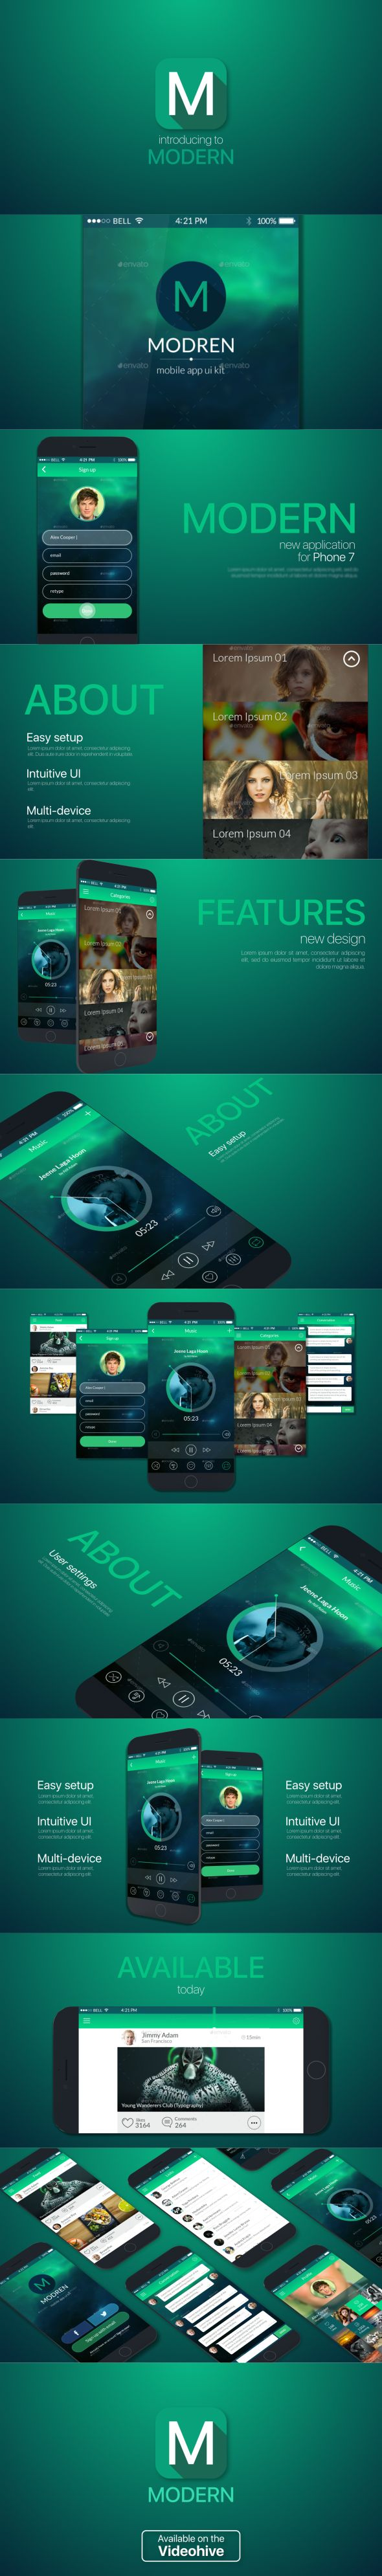 https://videohive.net/item/modern-app-promo/18998089?ref=zykost  Modern App Promo by zykovst |   VideoHive app promo, apple, apps, developer, ios, iphone, minimal, mobile, mockup, modern, presentation, promotion, responsive, store 12 unique scenes Modular structure 7 animated toutch points No plugins required After Effects CS6 or above Videohelp Easy to use, comfortable controls Universal Expressions